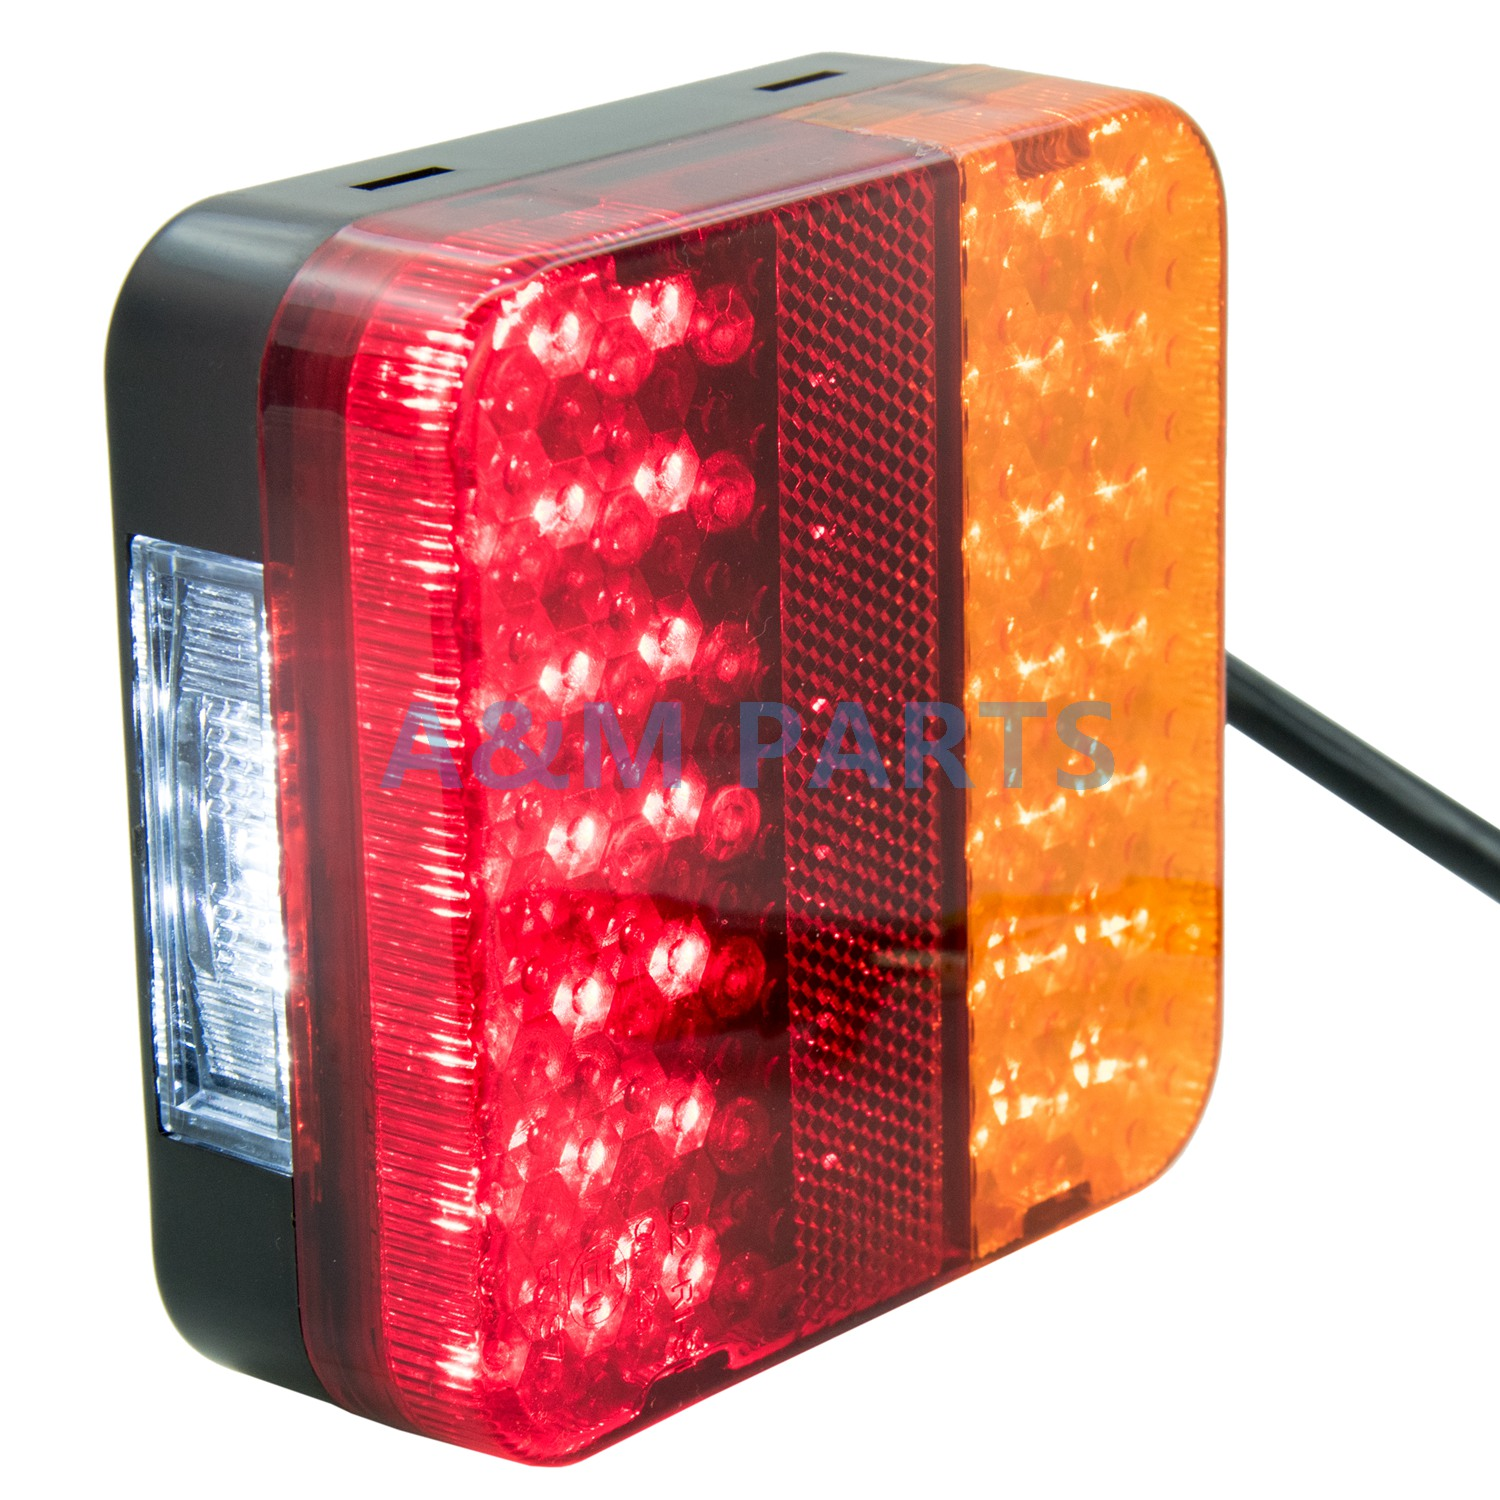 Square LED Boat Combination Trailer Light Kit With License Plate Light Stop Tail Indicator Turn Signal Trailer Light 12V 47 LEDs universal flexible strip motorcycle light strip led amber tail brake stop turn signal light license plate lamp decoration